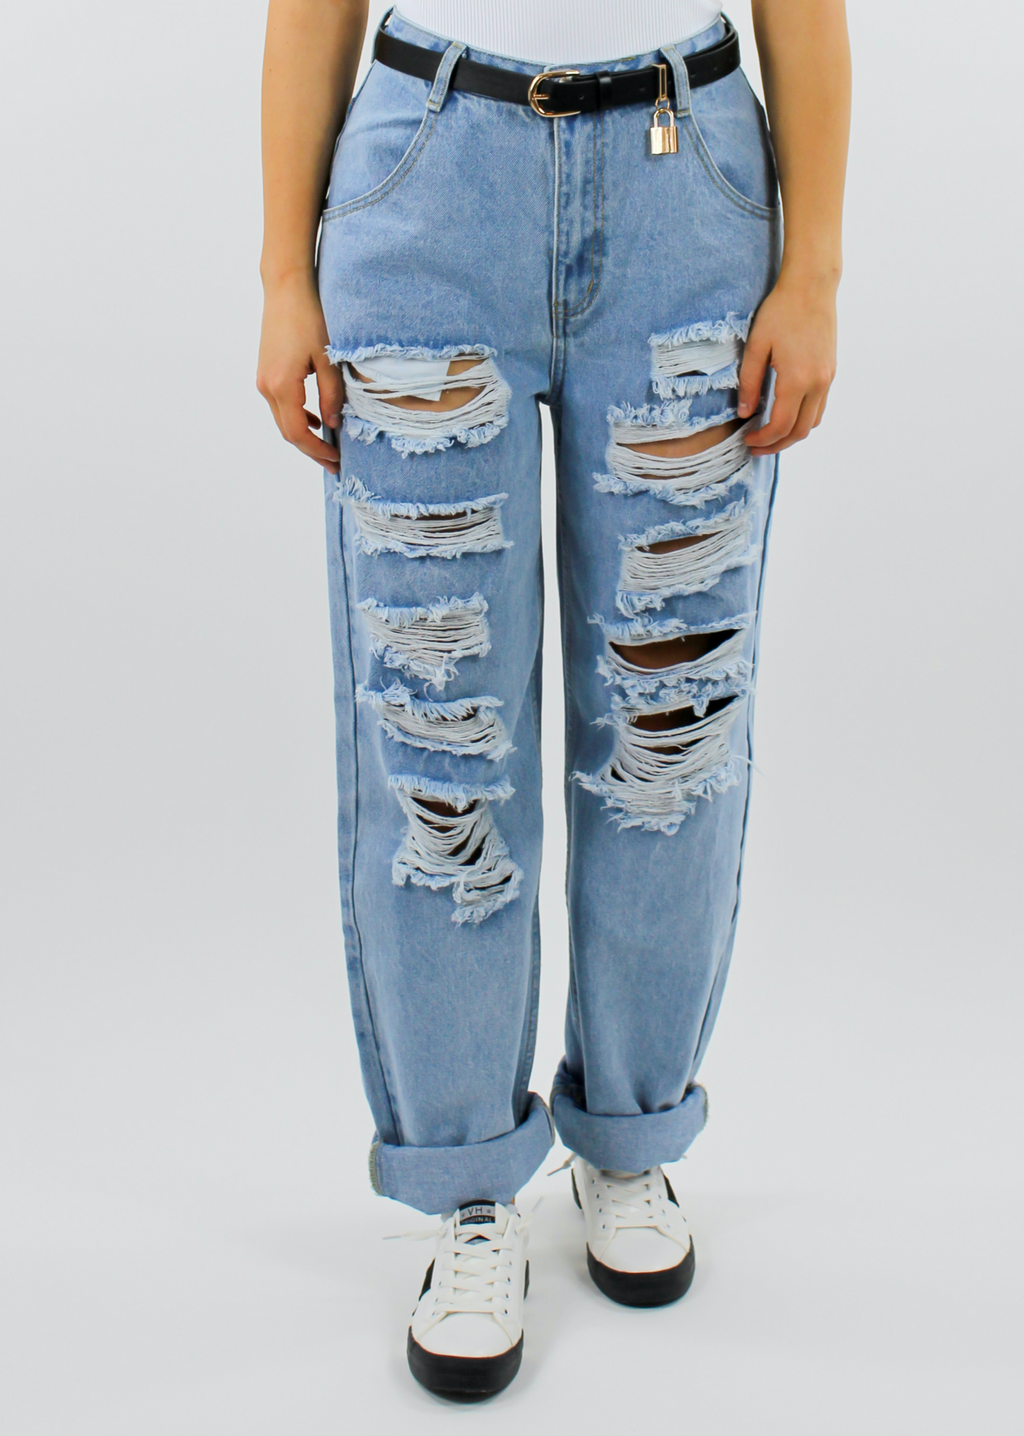 Tear It Up Jeans ★ Light Denim - Rock N Rags